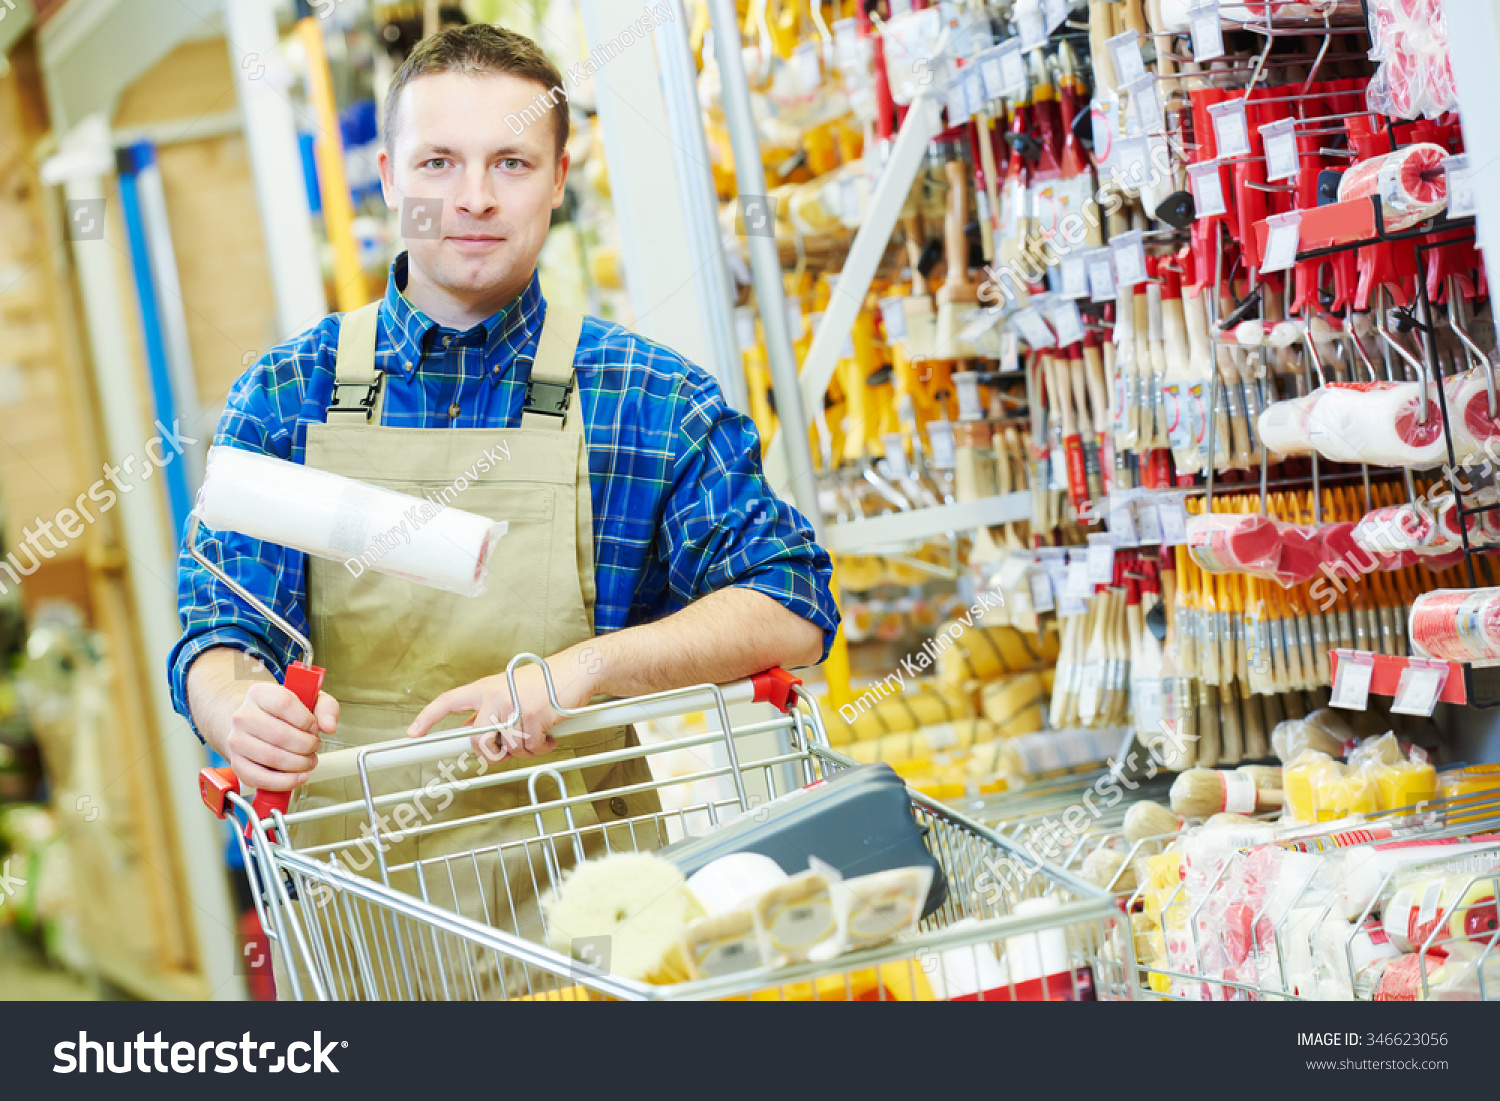 happy hardware store worker painter buyer stock photo  happy hardware store worker or painter buyer customer shopping cart looking at the camera